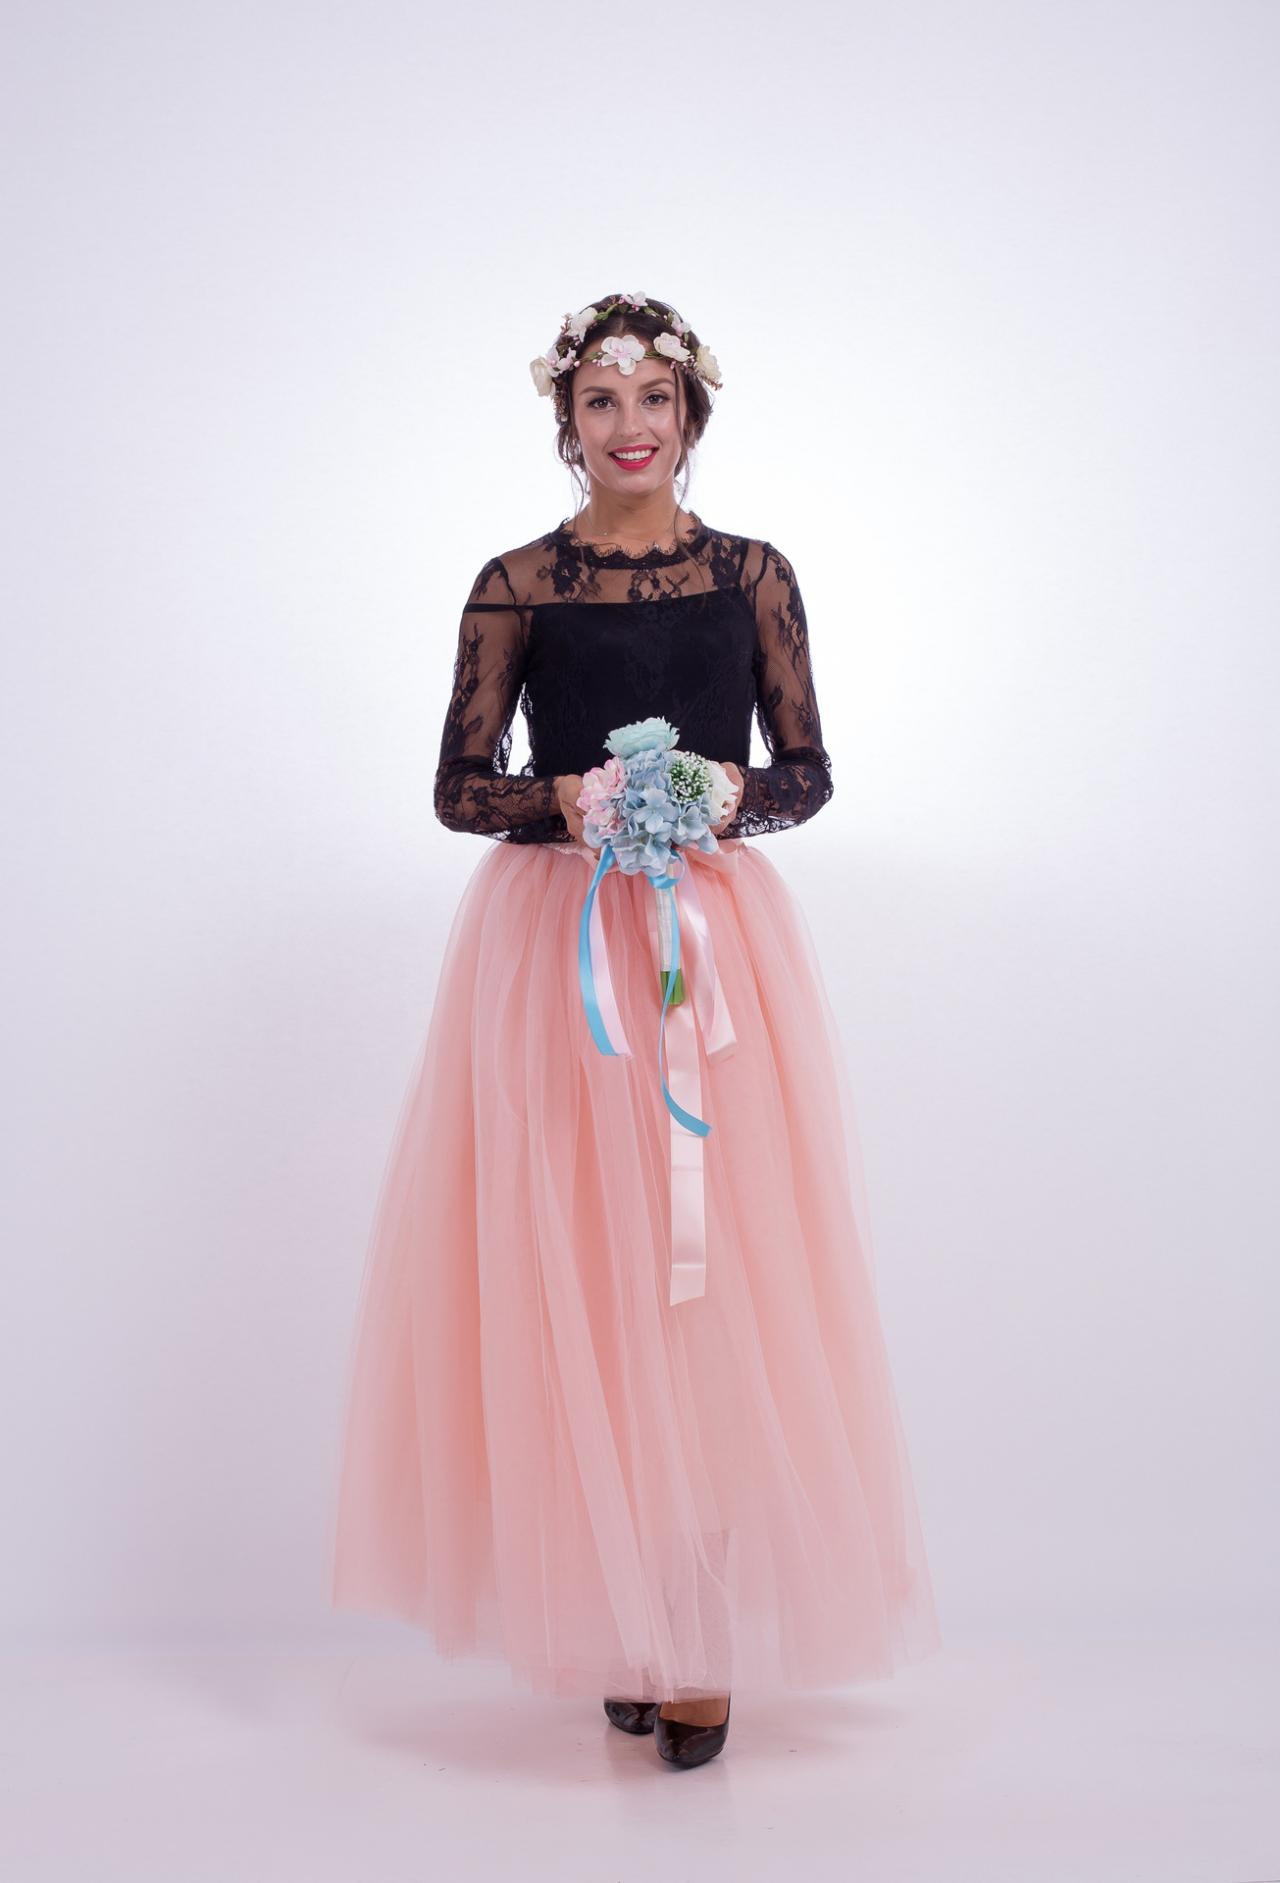 6 Layers Tulle Skirt Summer Maxi Long Muslim Skirt Womens Elastic Waist Lolita Tutu Skirts samlon